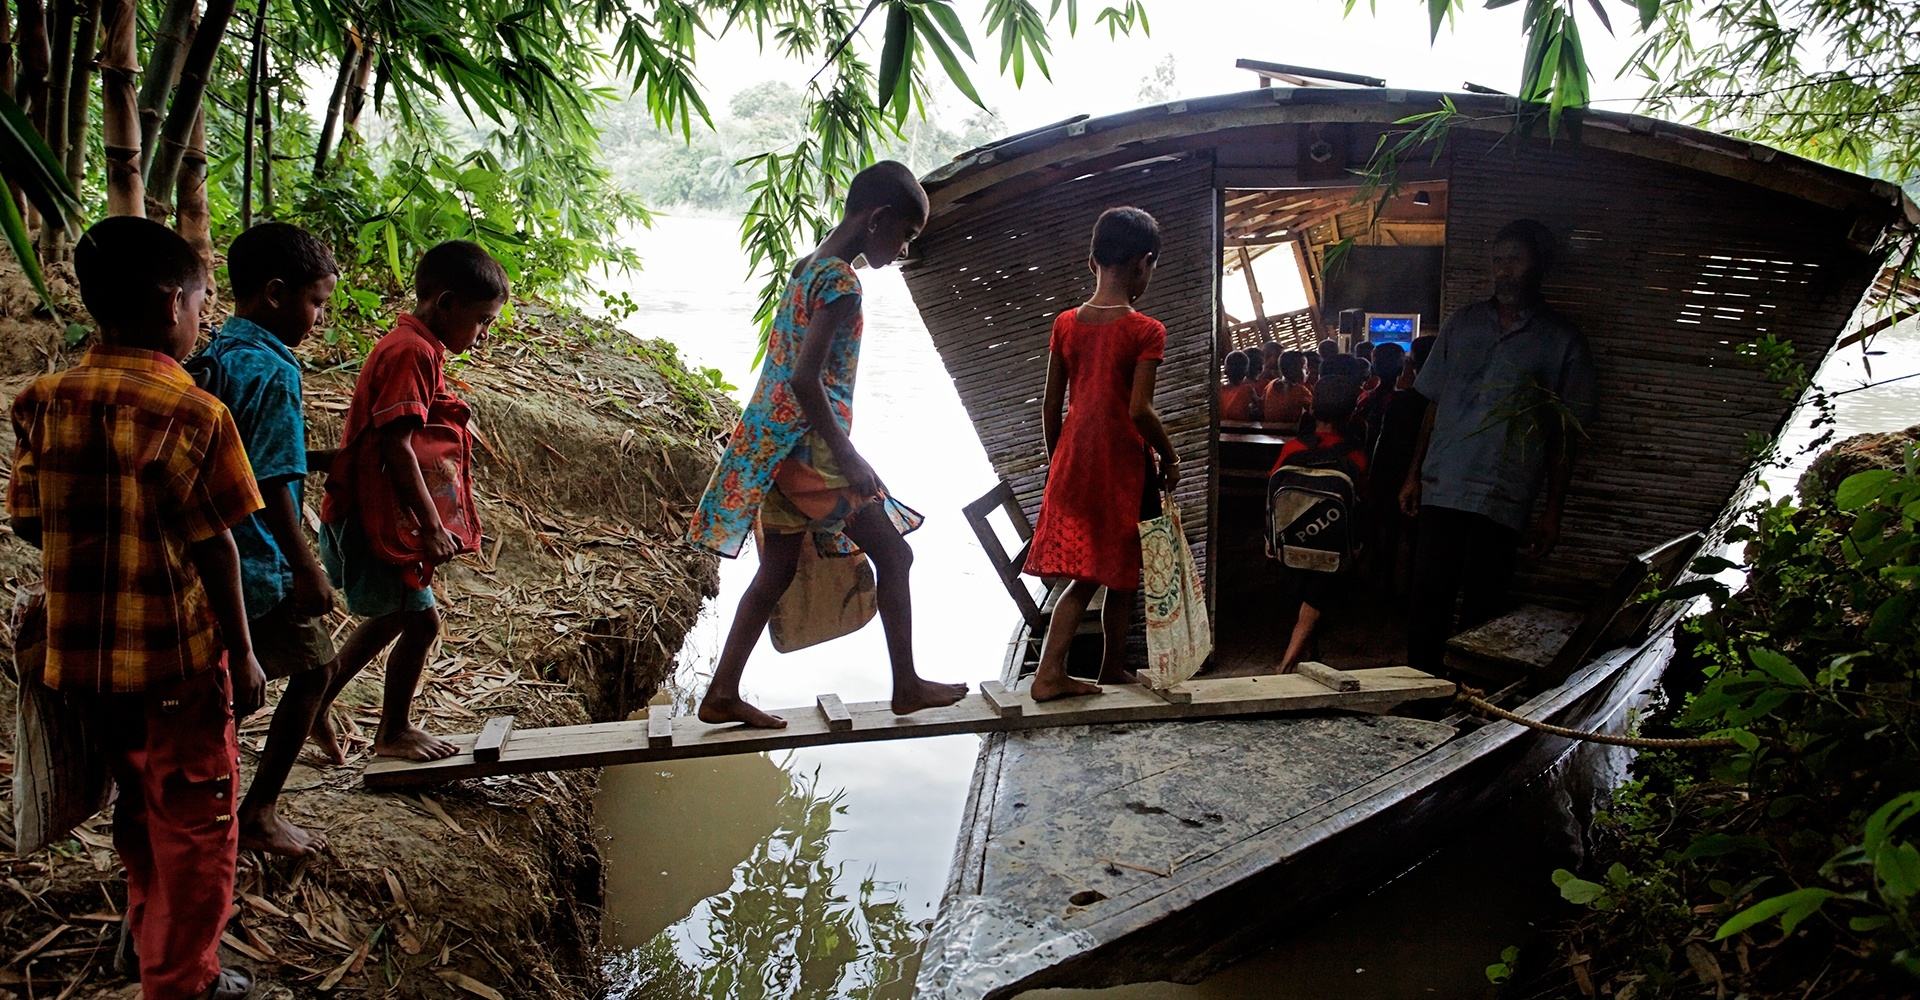 Floating school - Pabna, Bangladesh